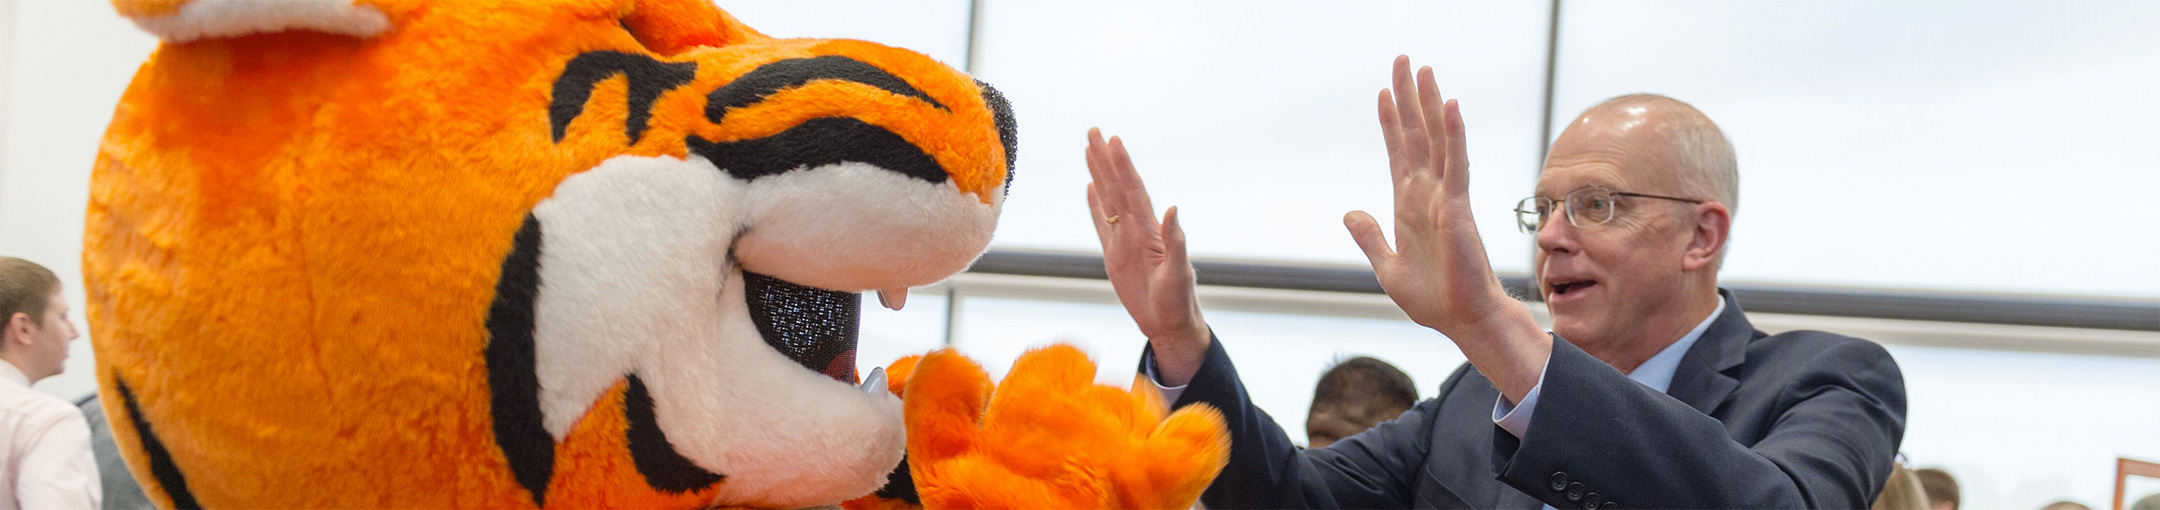 President Munson giving Ritchie the Tiger a high five